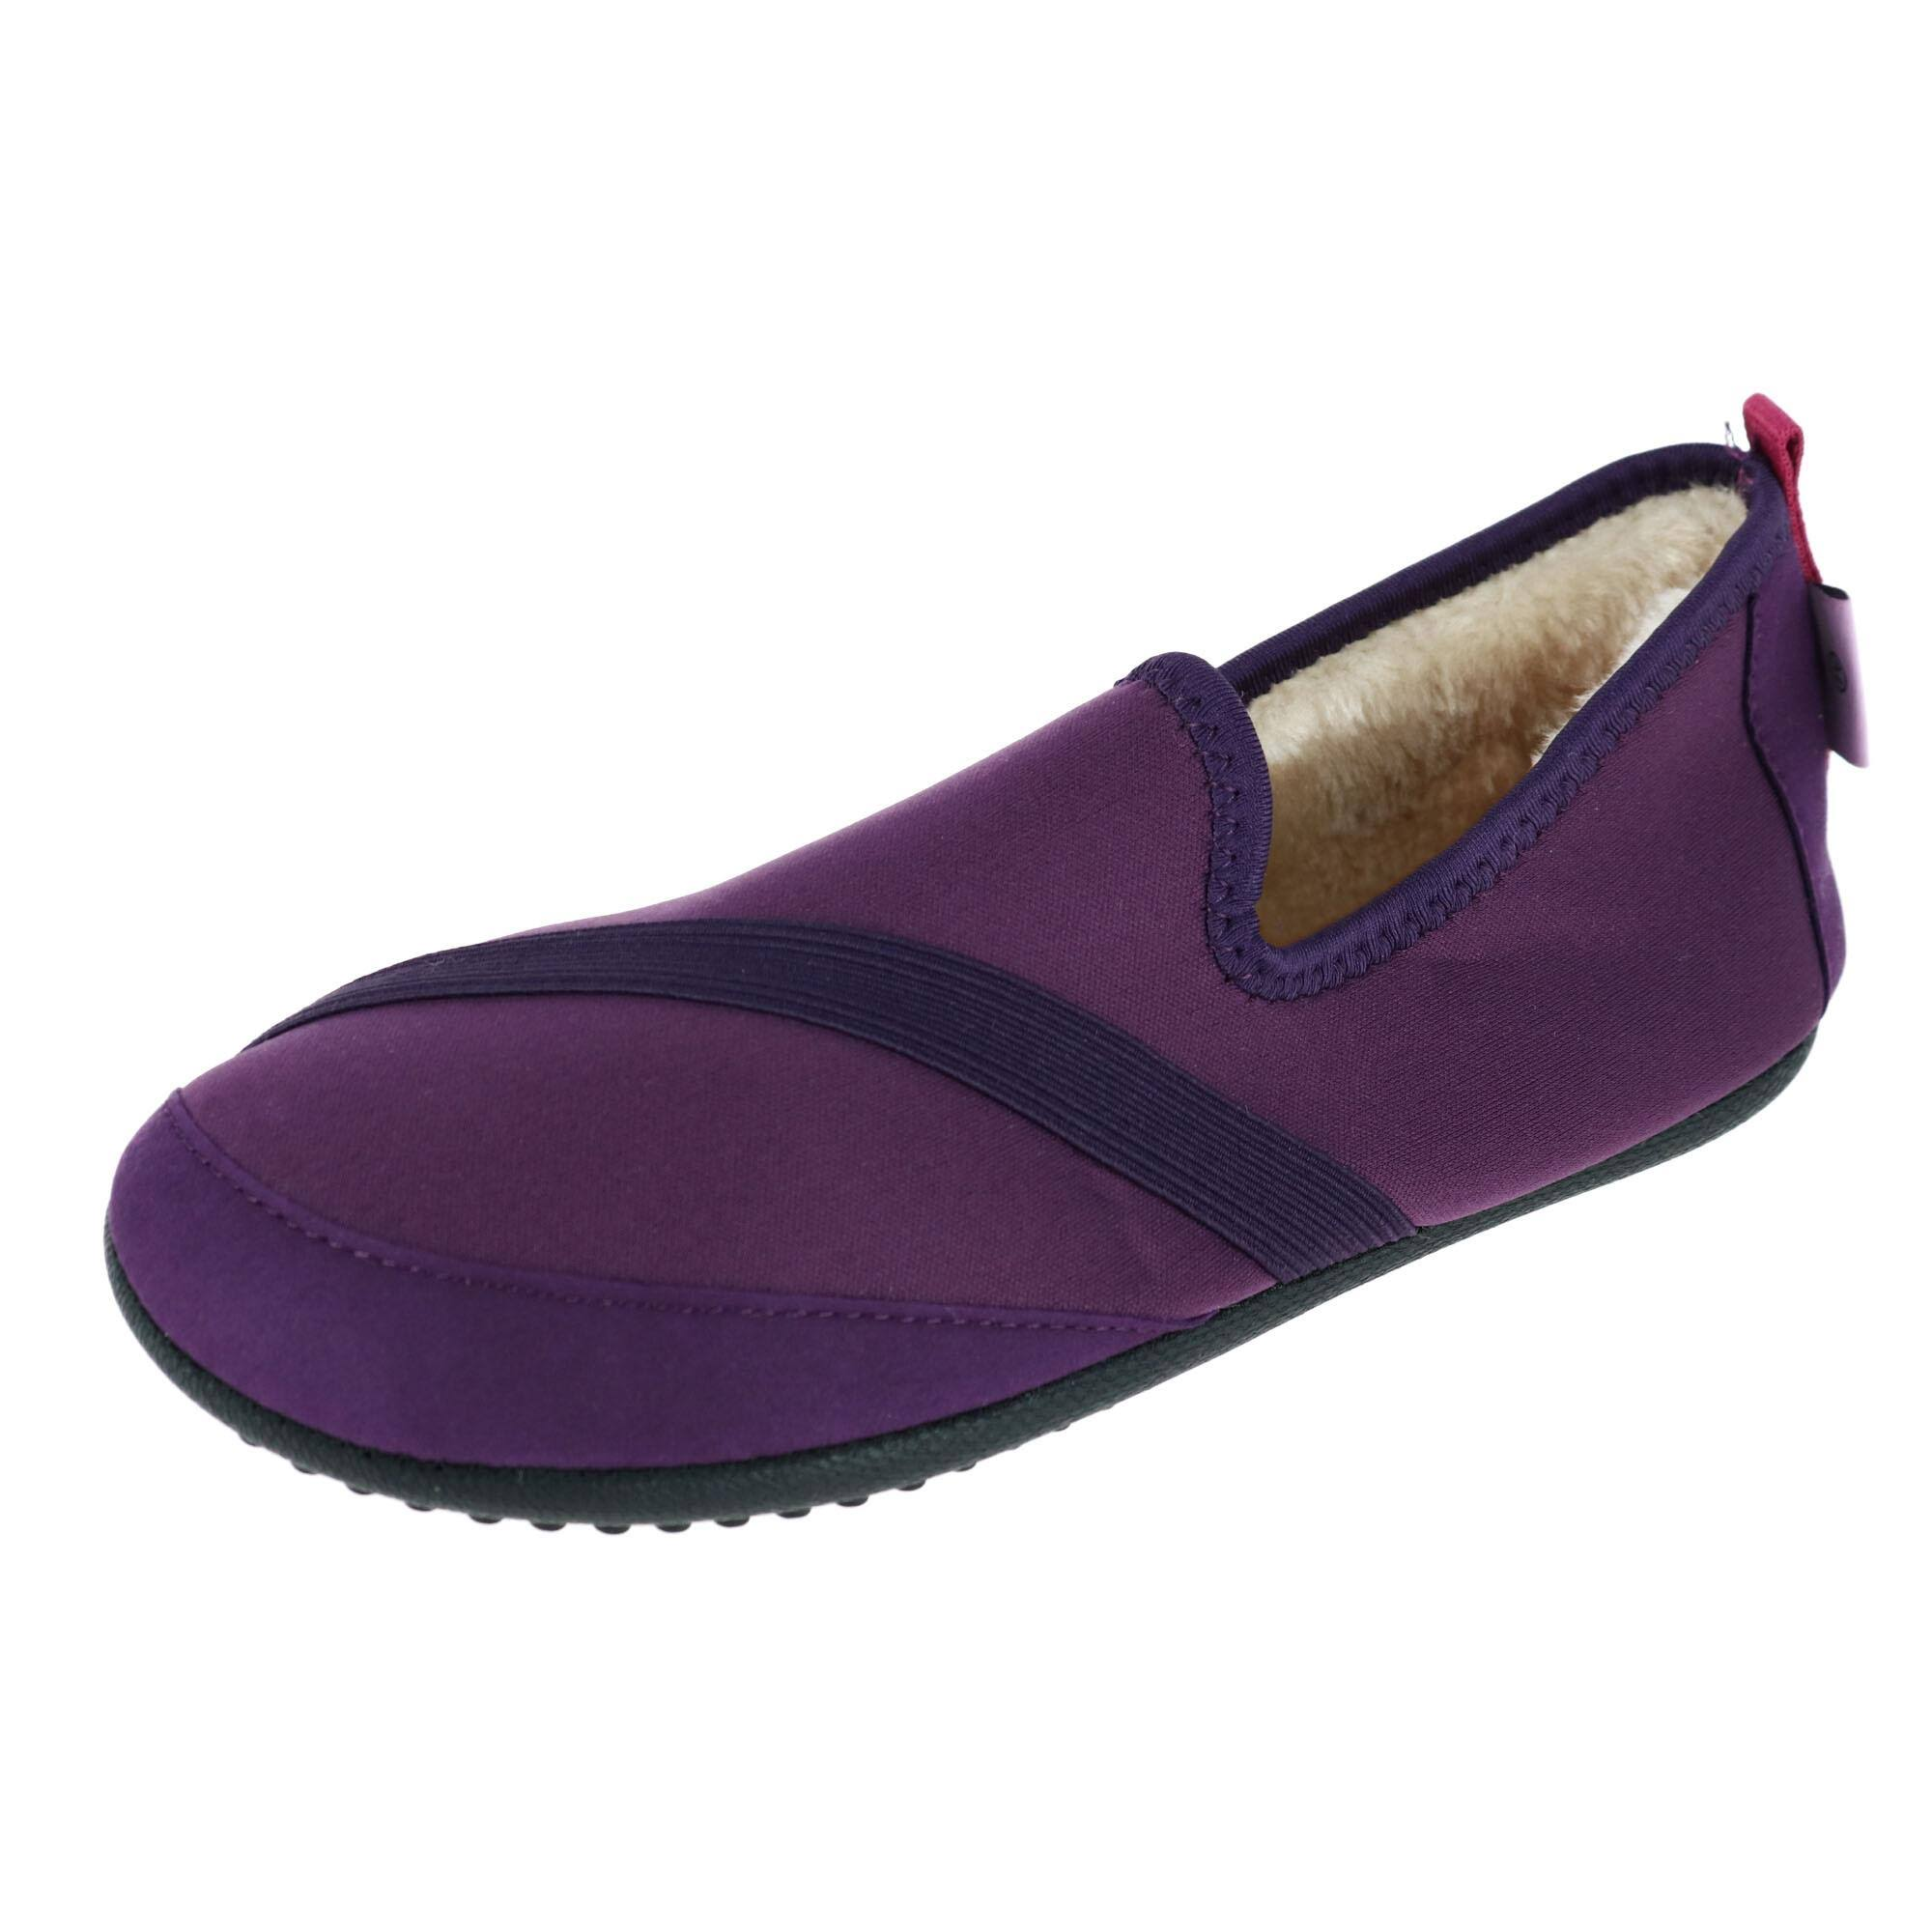 Fit Kicks Women's Solid Kozi Kicks Insulated Slippers - Purple, X-Large